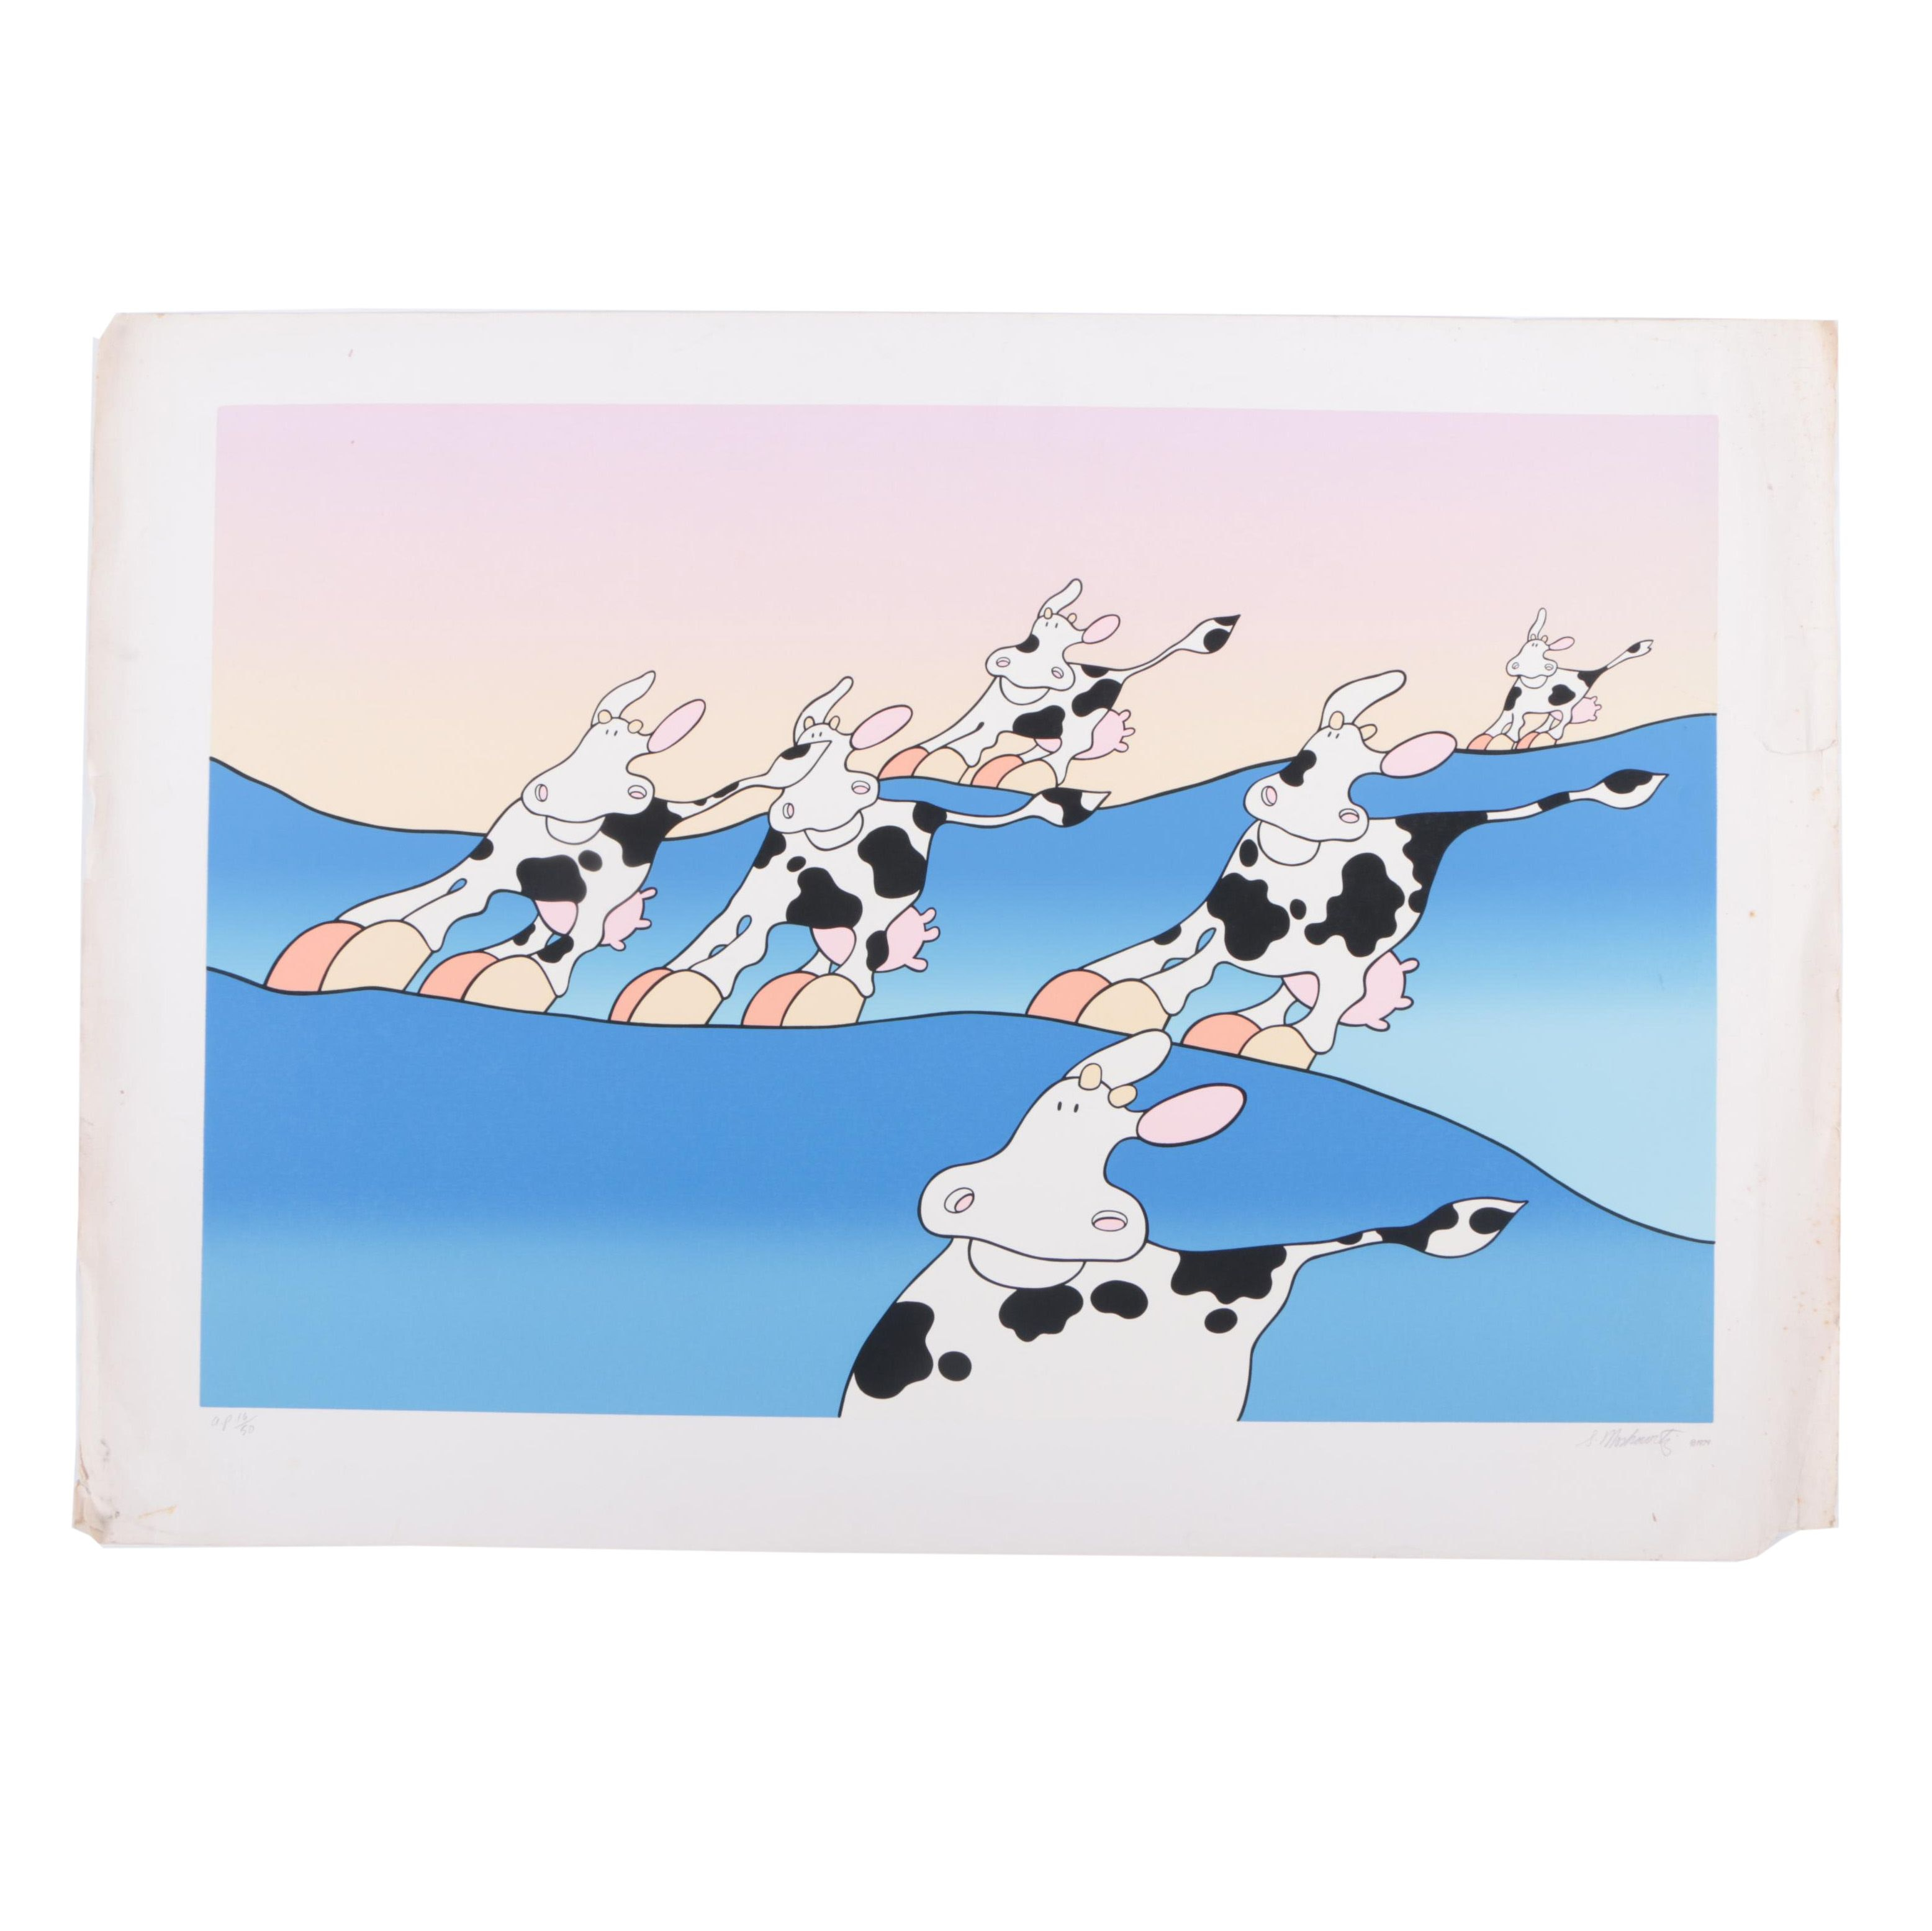 Stewart Moskowitz Limited Edition Serigraph Print Cows